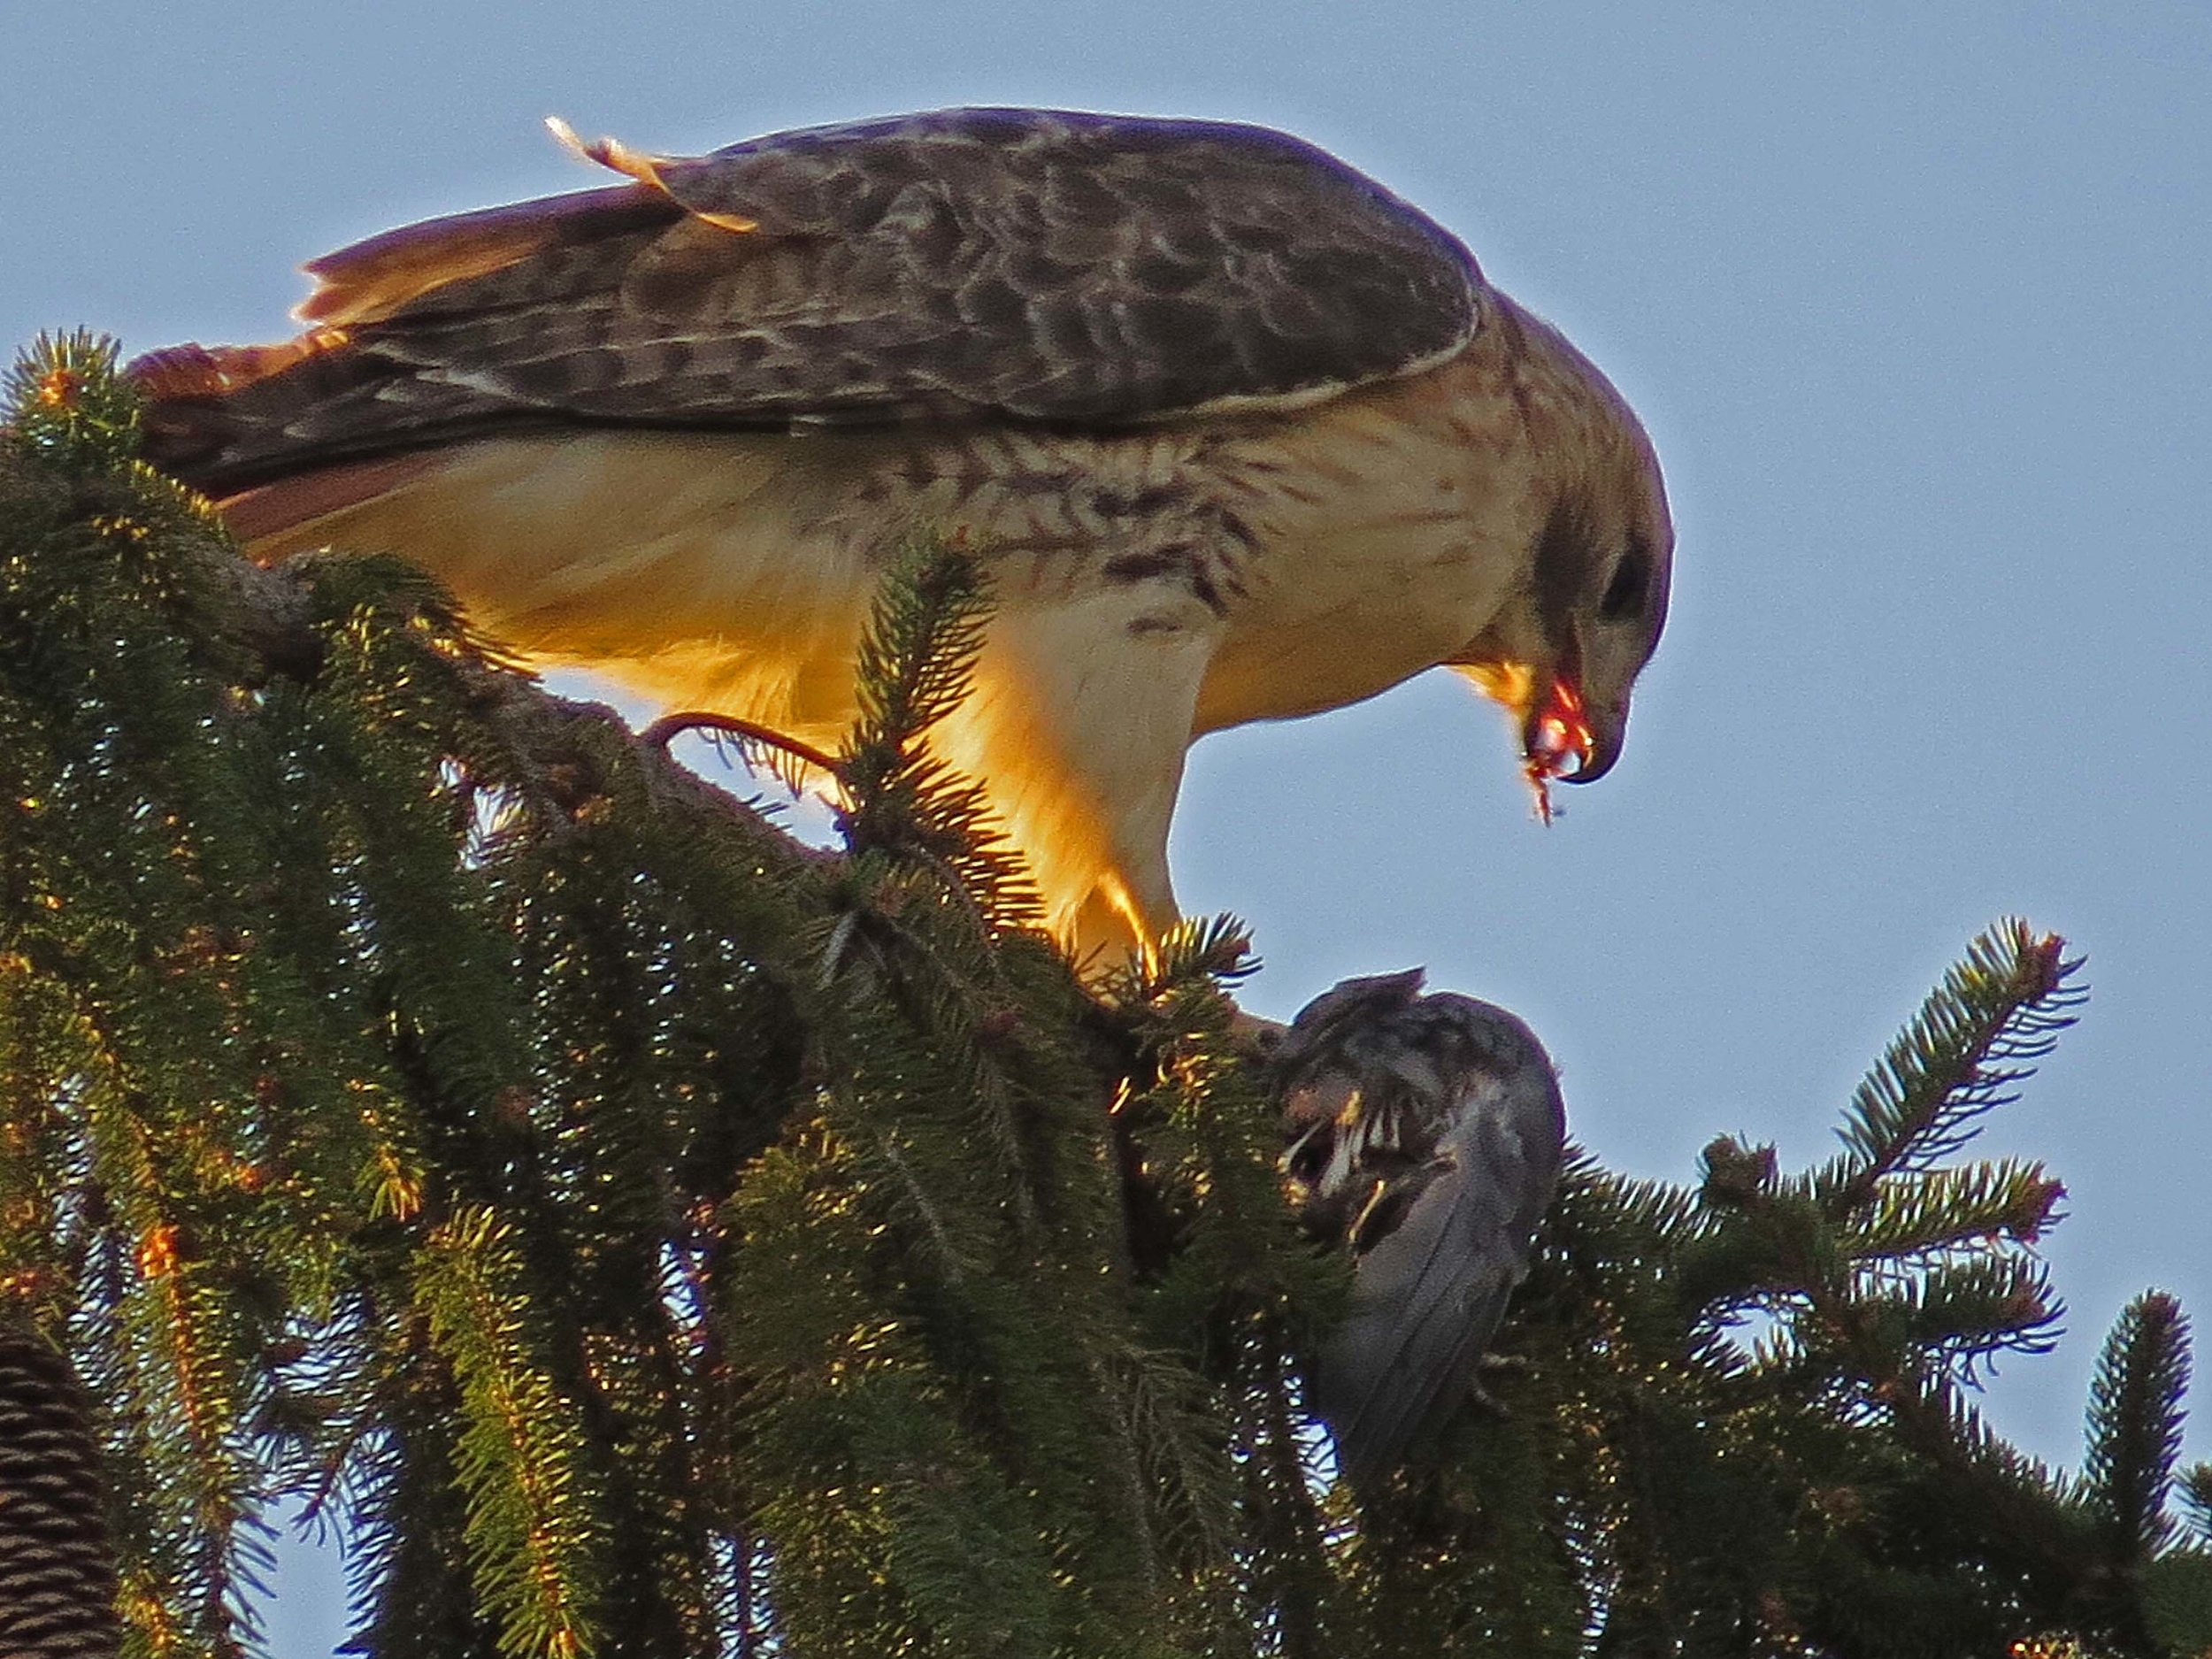 Pale on Cedar Hill, eating pigeon, April 14